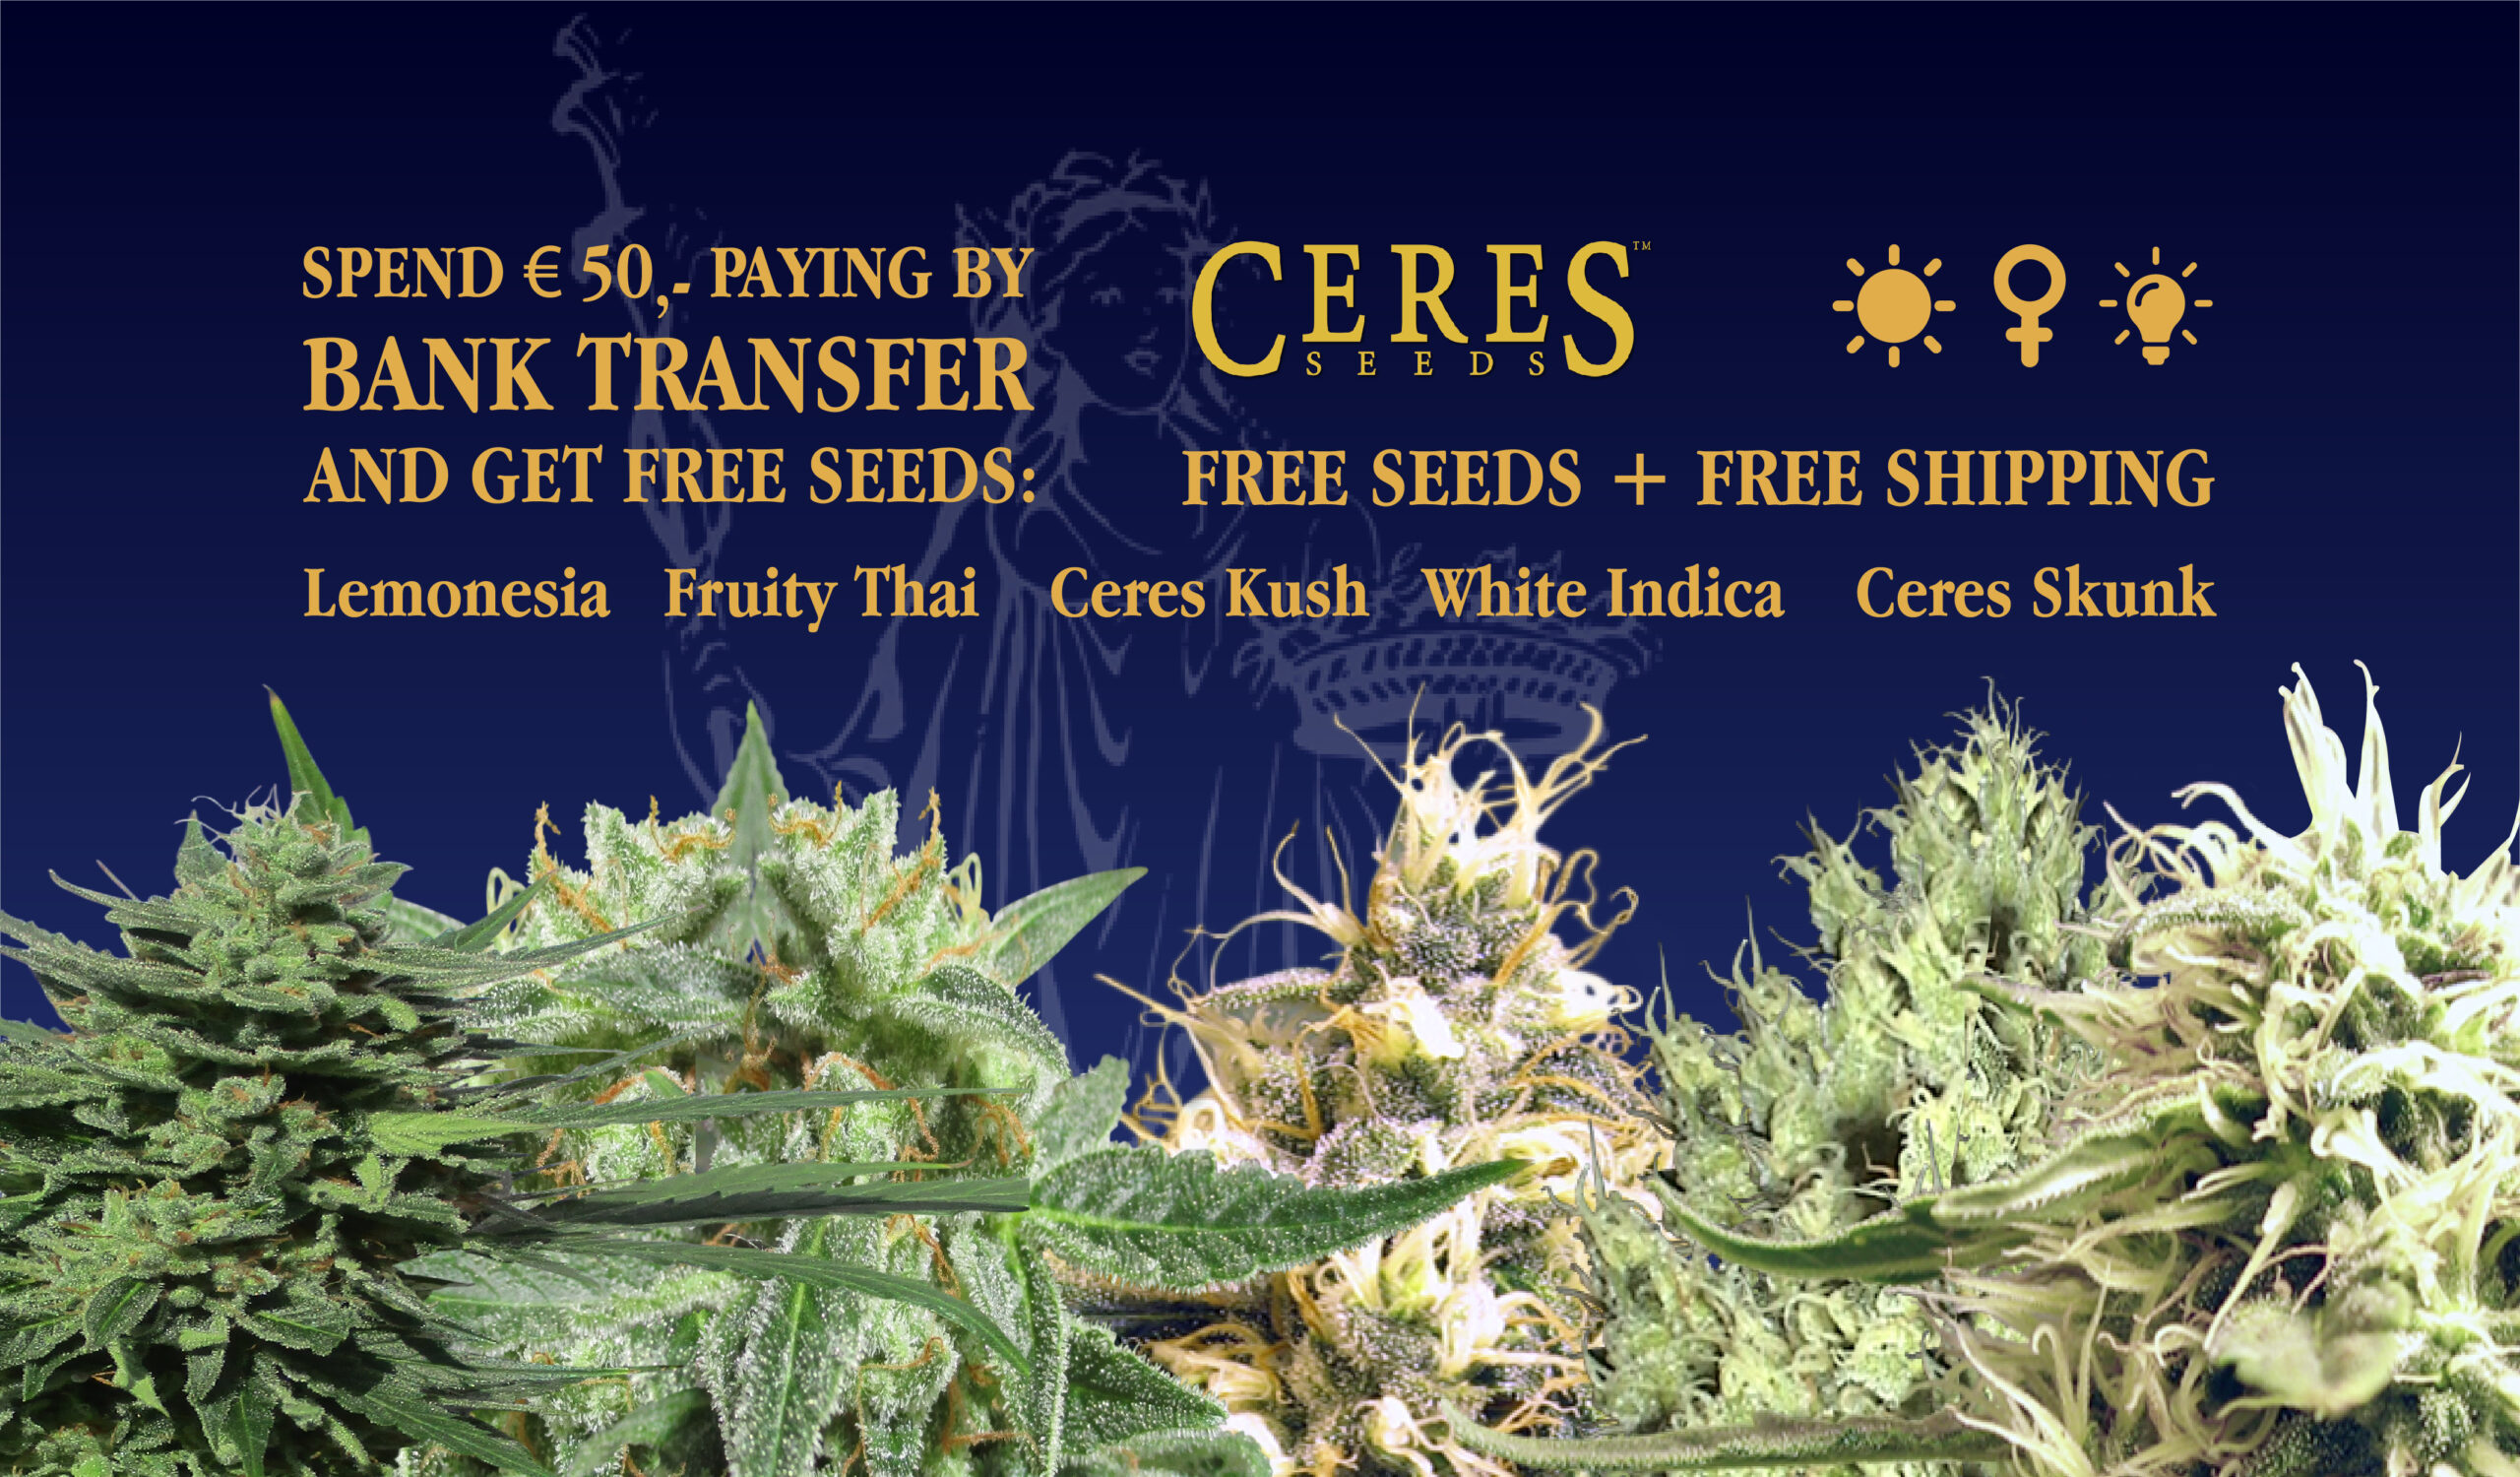 Ceres Seeds Amsterdam - Free seeds and shipping by spending 50 euro!